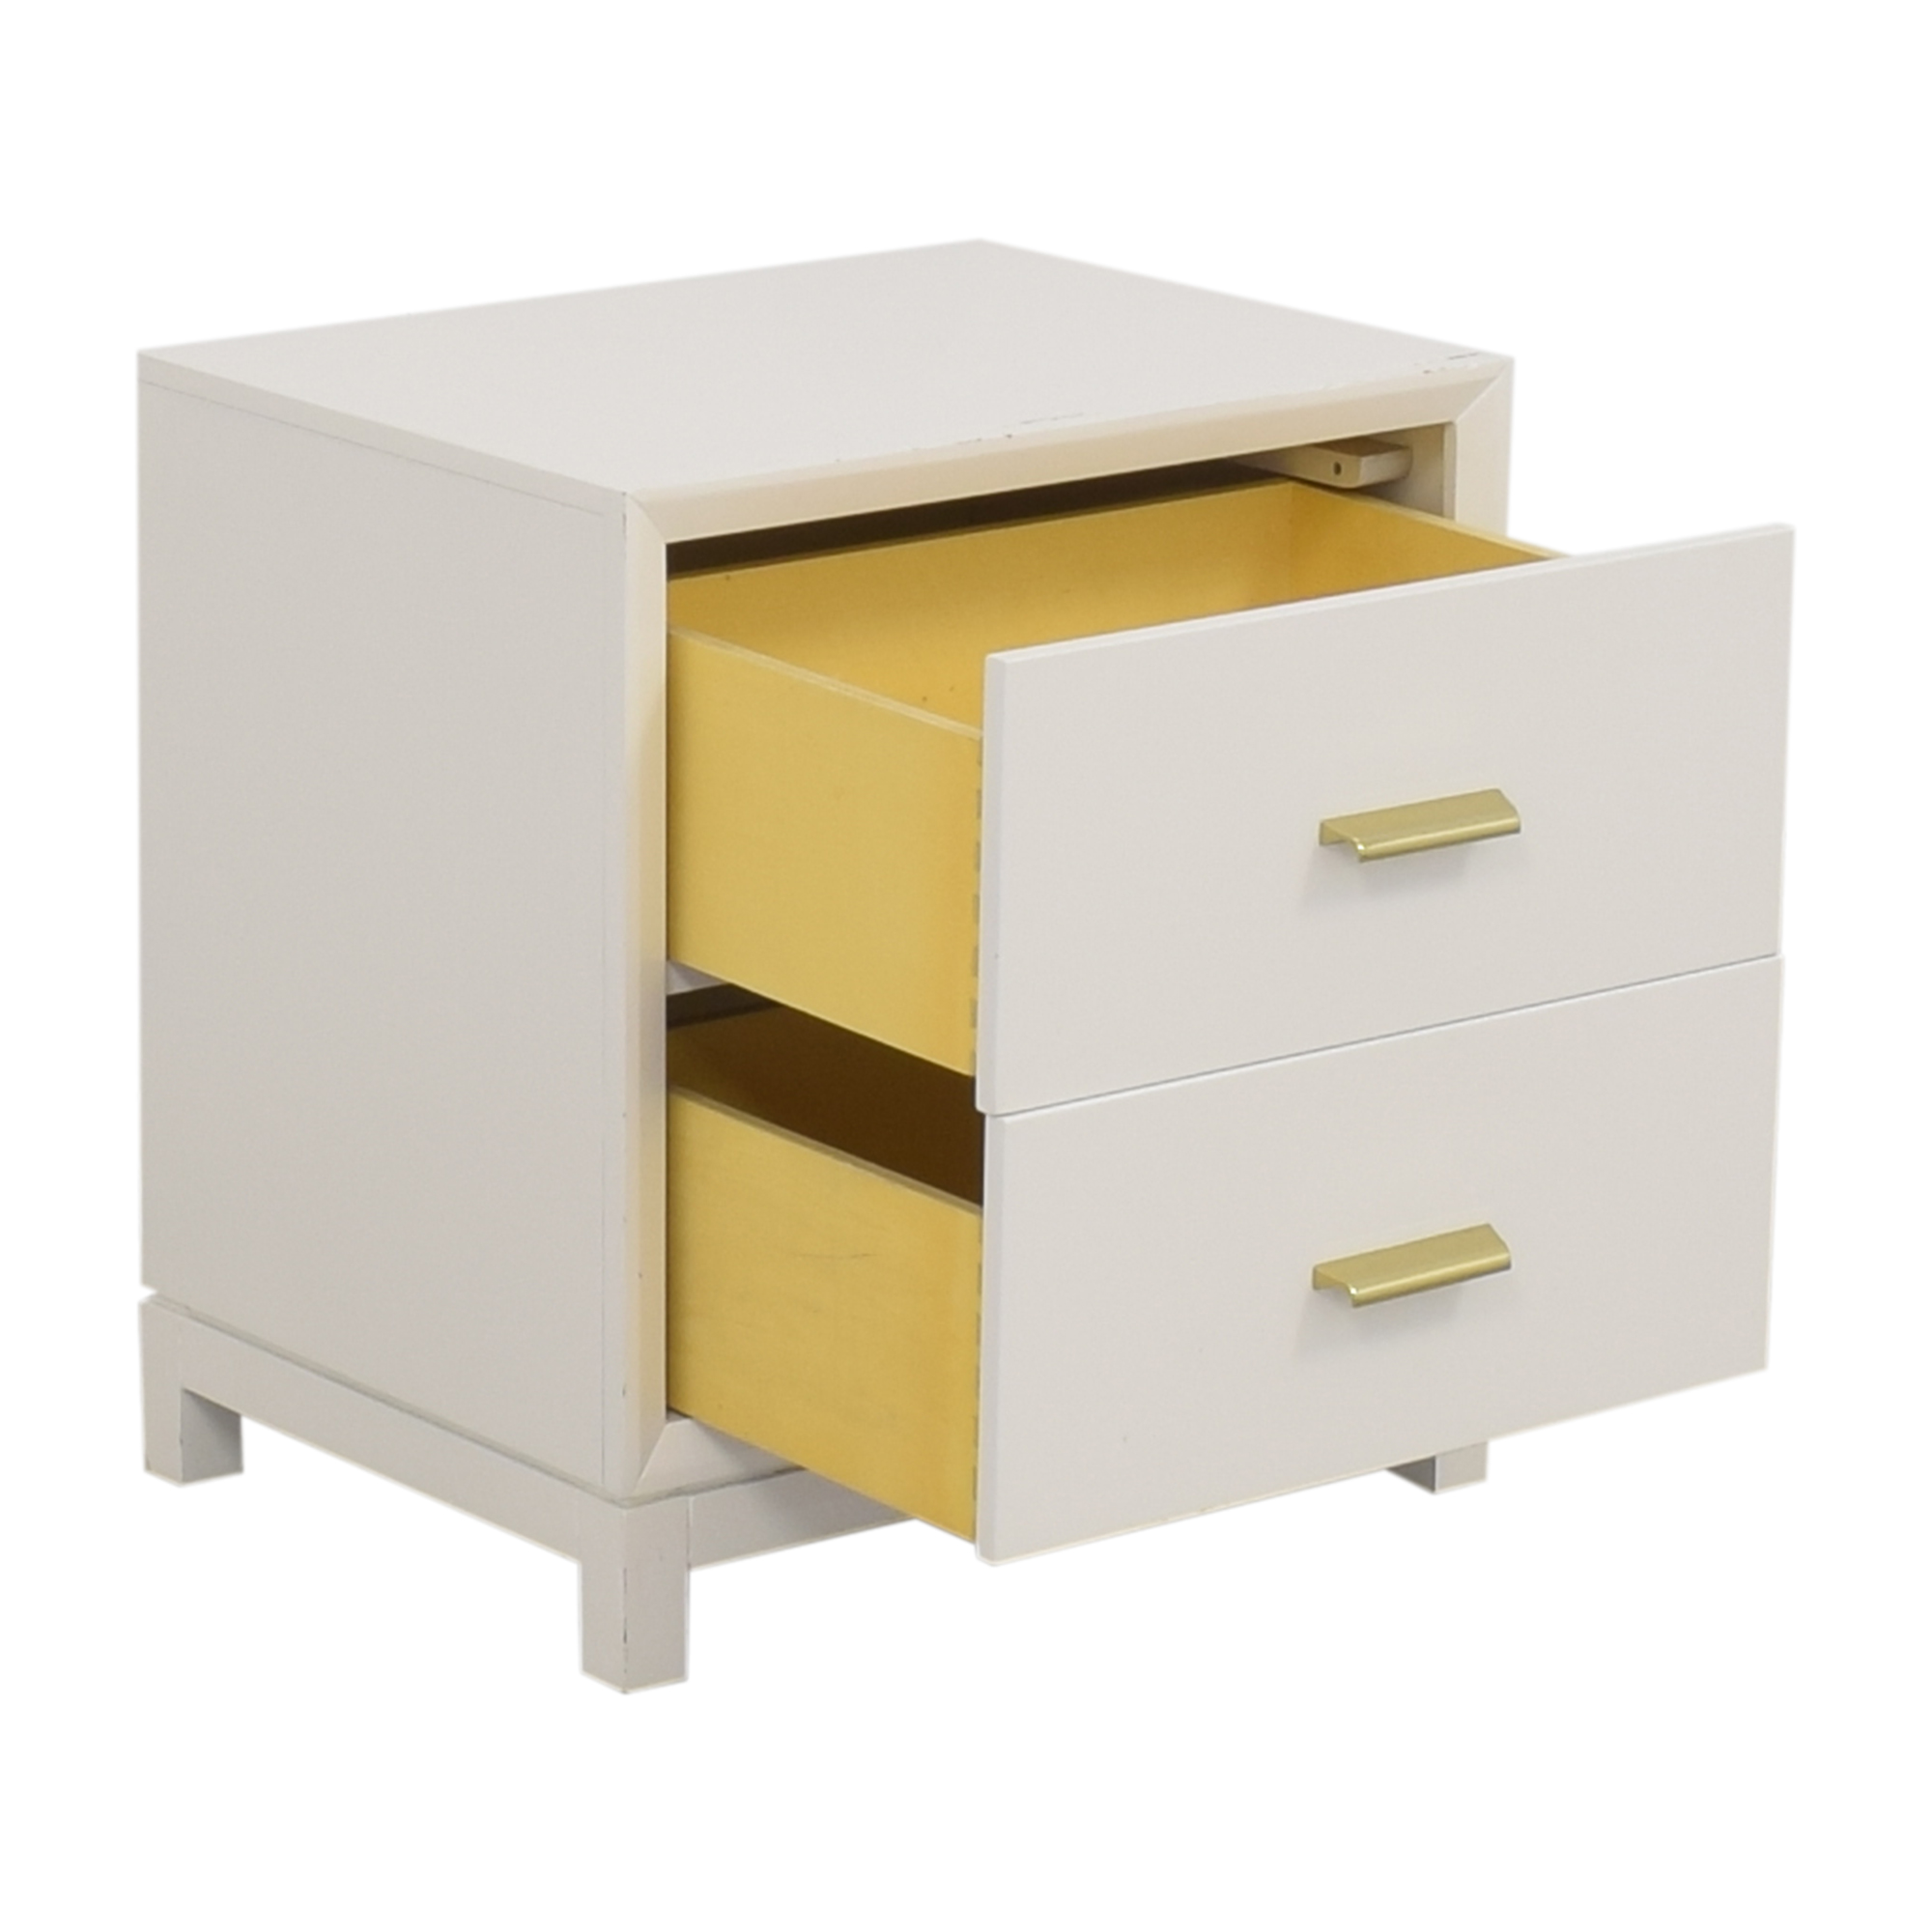 PBteen PBteen Nightstand with Two Drawers used